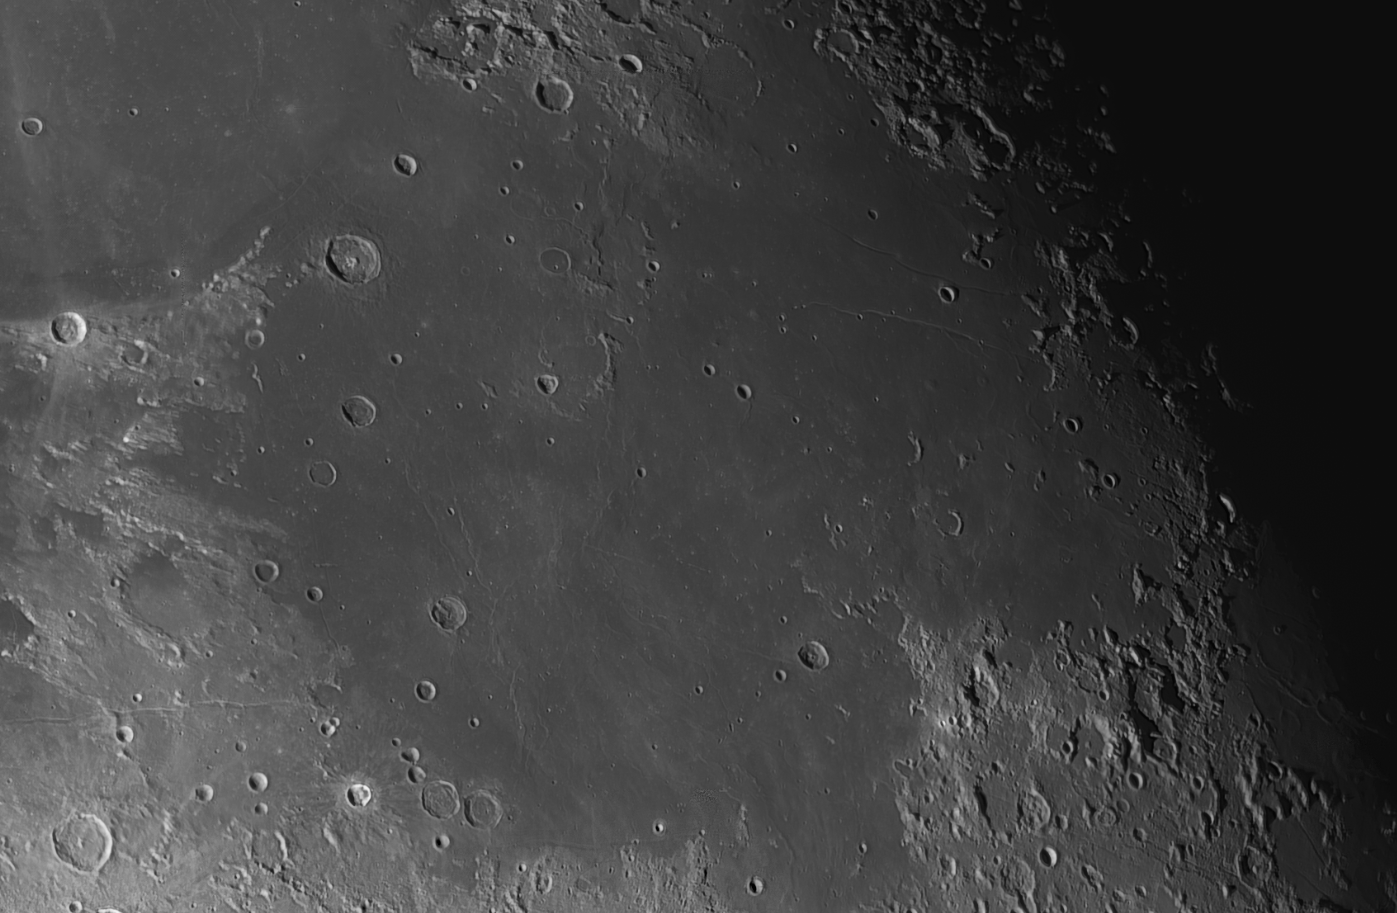 2021-02-03_20h54_04.png